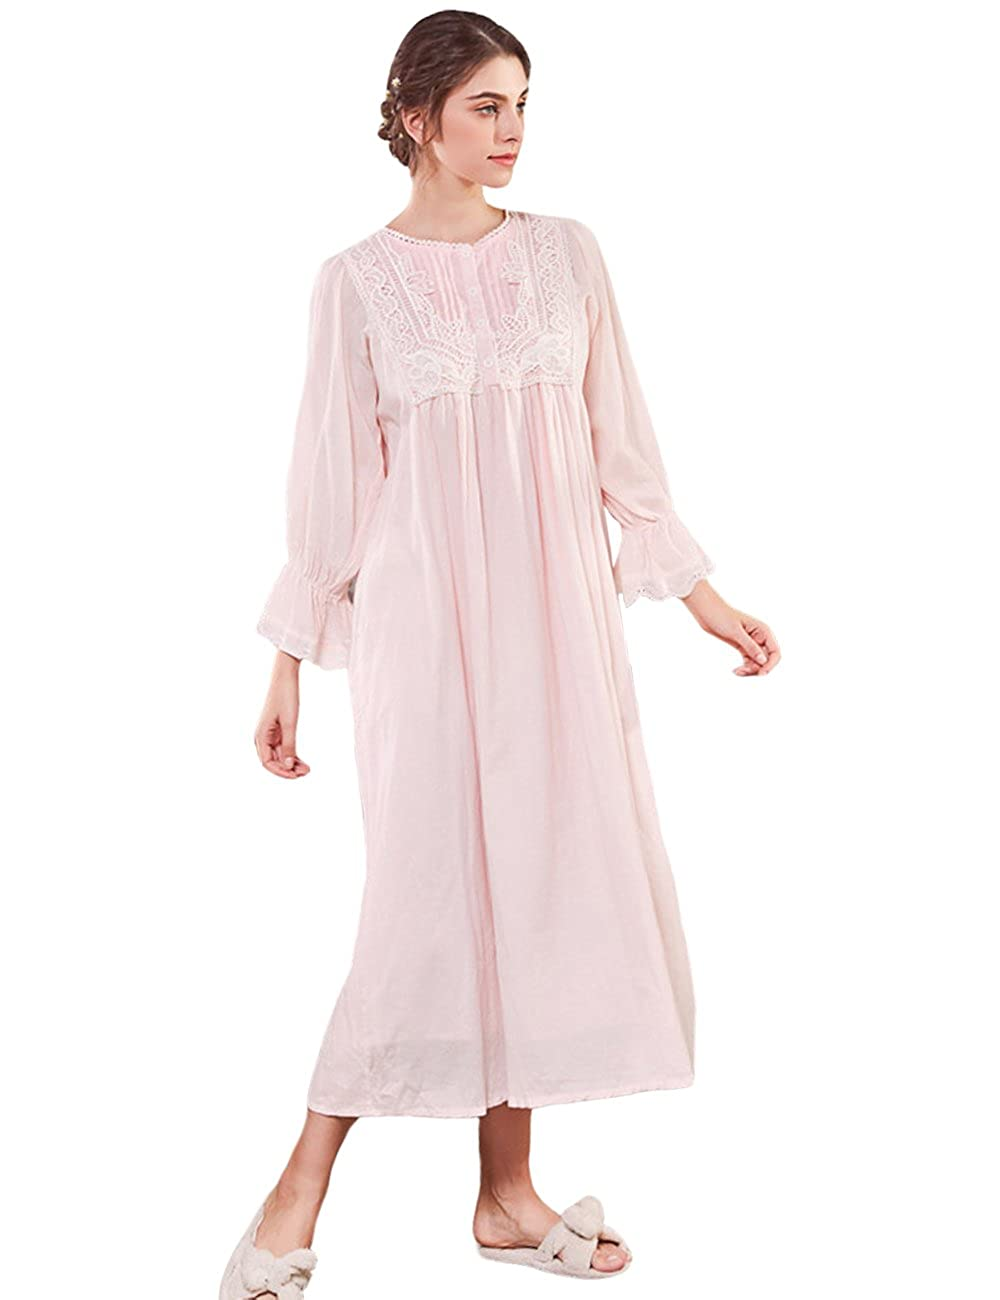 AIKOSHA Womens Retro Victorian Style Cotton Nightie Long Flare Sleeve Full Length Nightdress